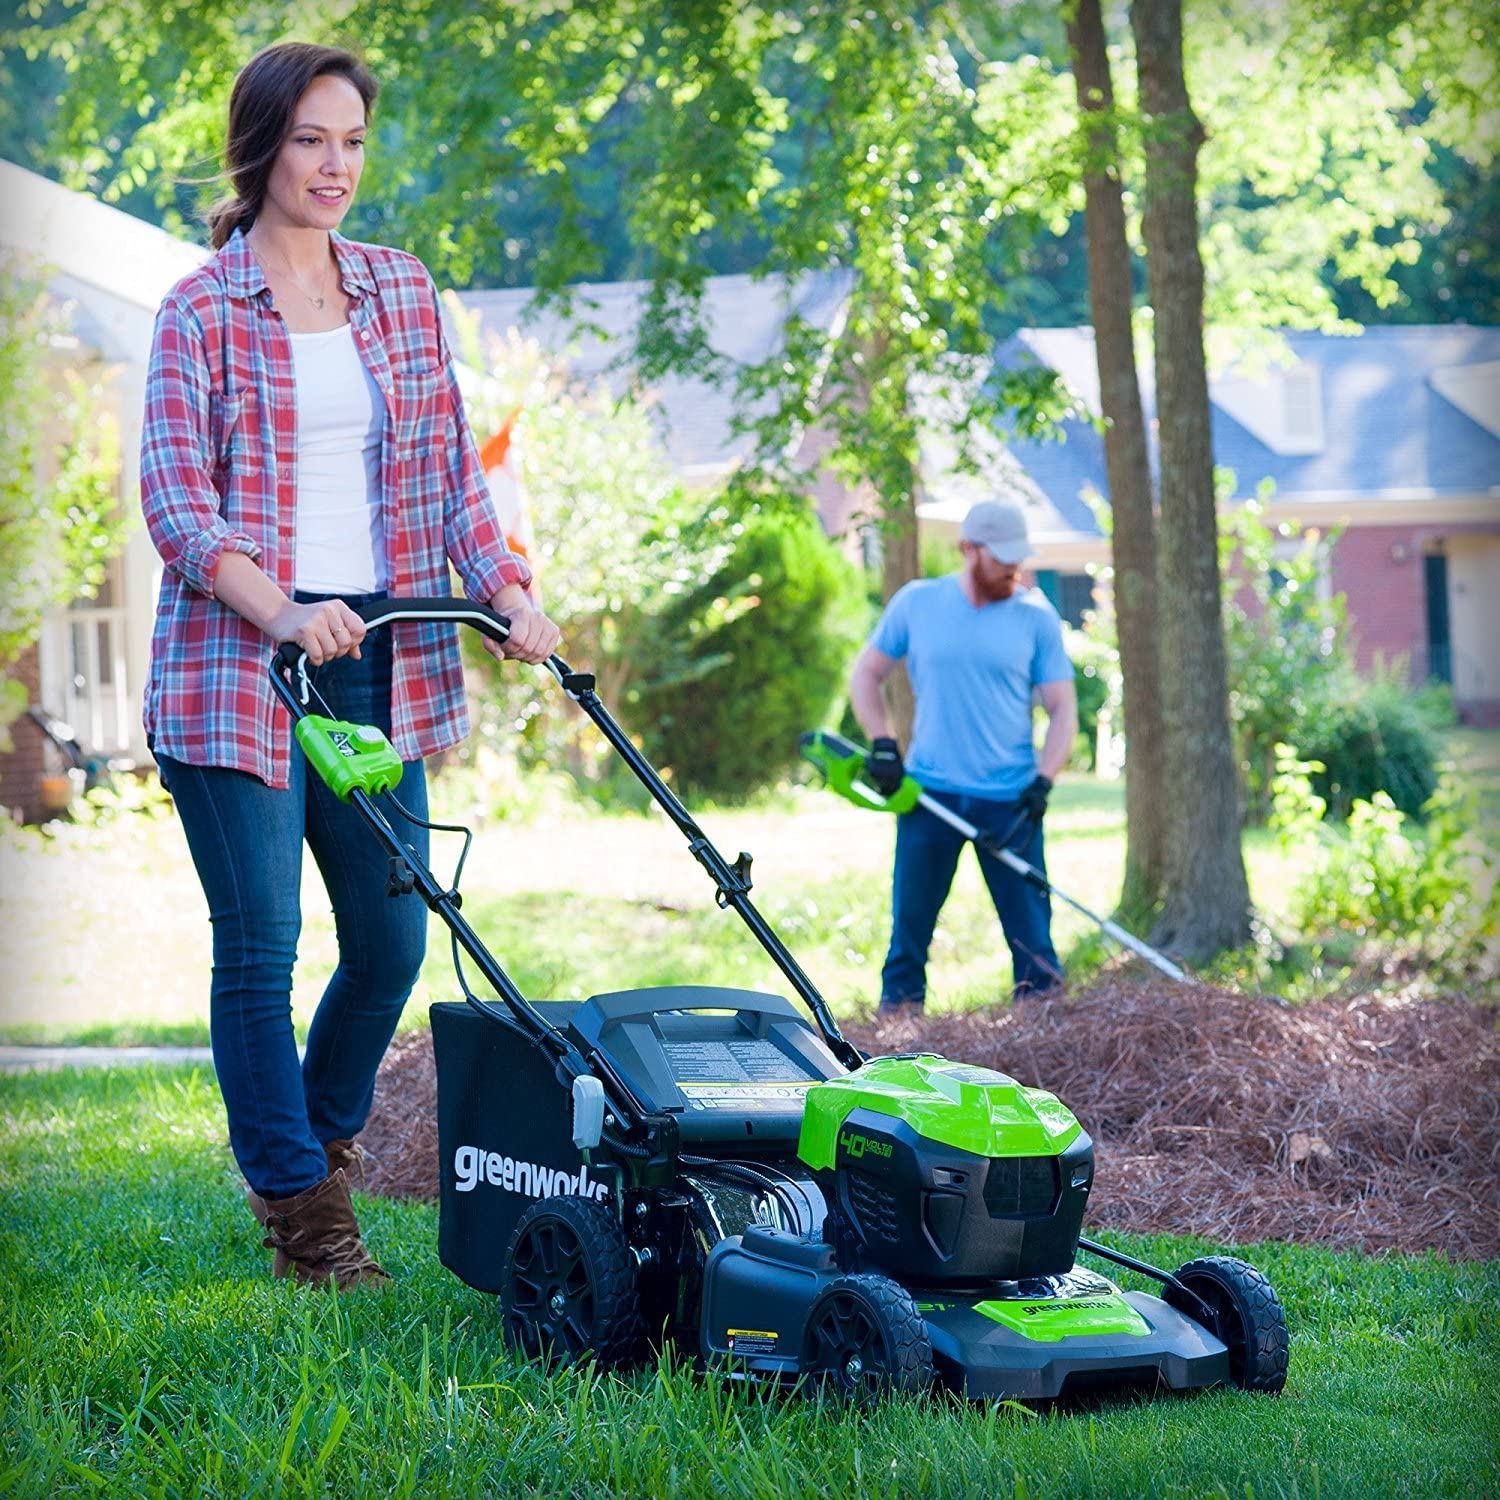 Greenworks Self-Propelled Cordless Lawn Mower MO40L02 greenworks mower